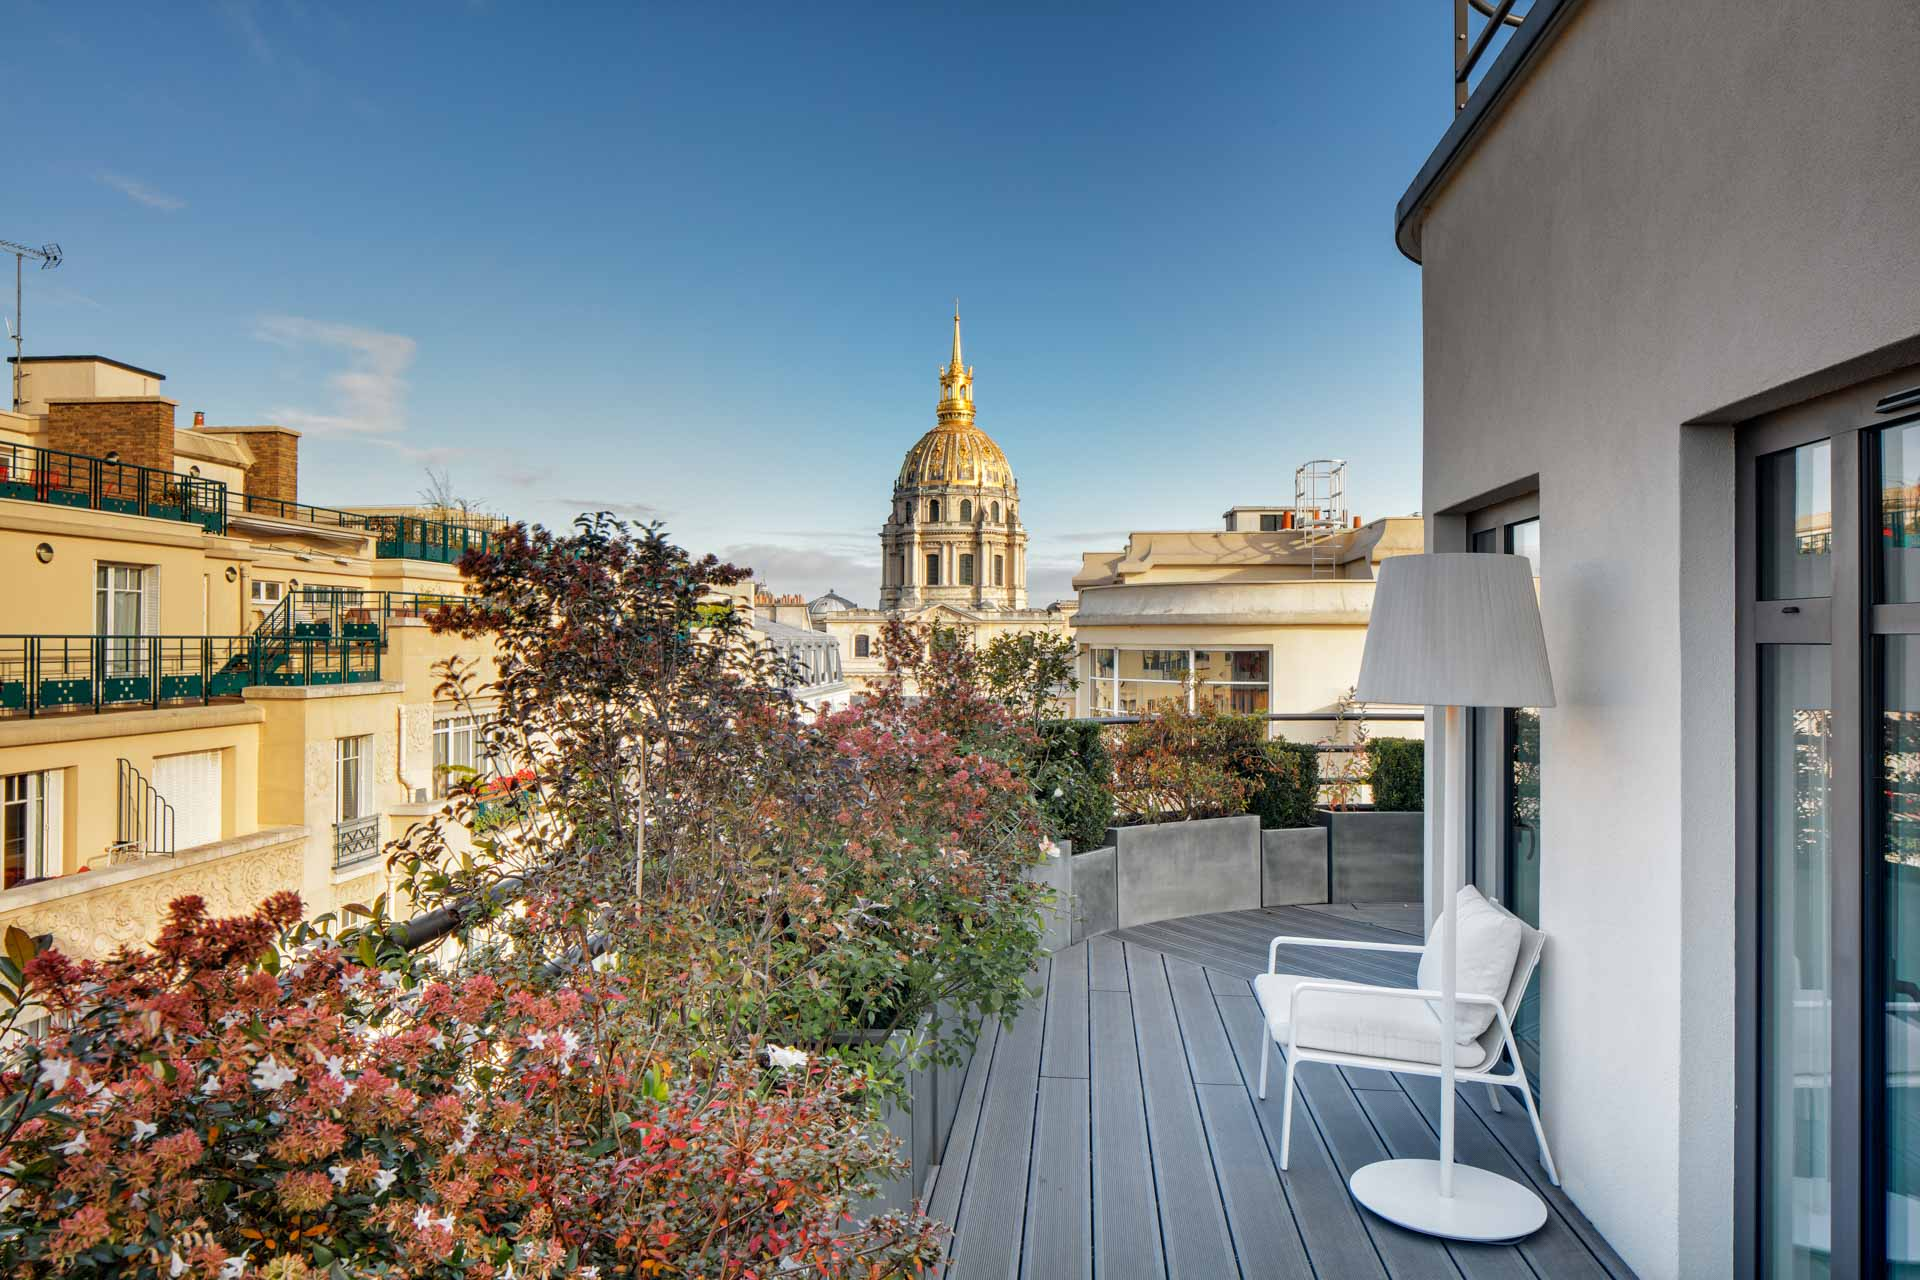 Terrace at the Hotel Le Cinque Codet Paris with the view on the Dom des Invalides